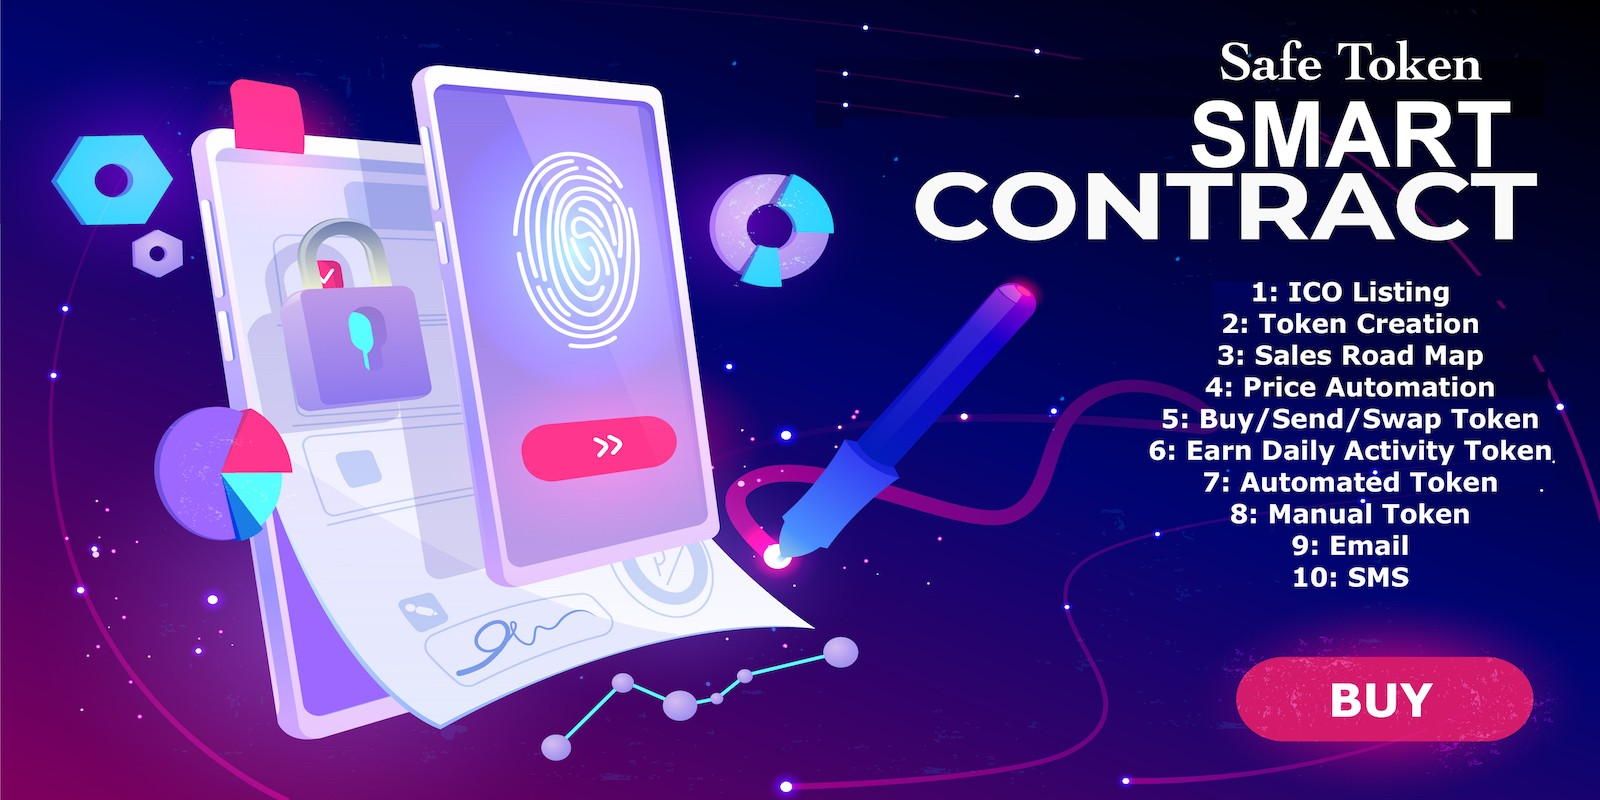 Safe Token Smart Contract - PHP Scripts